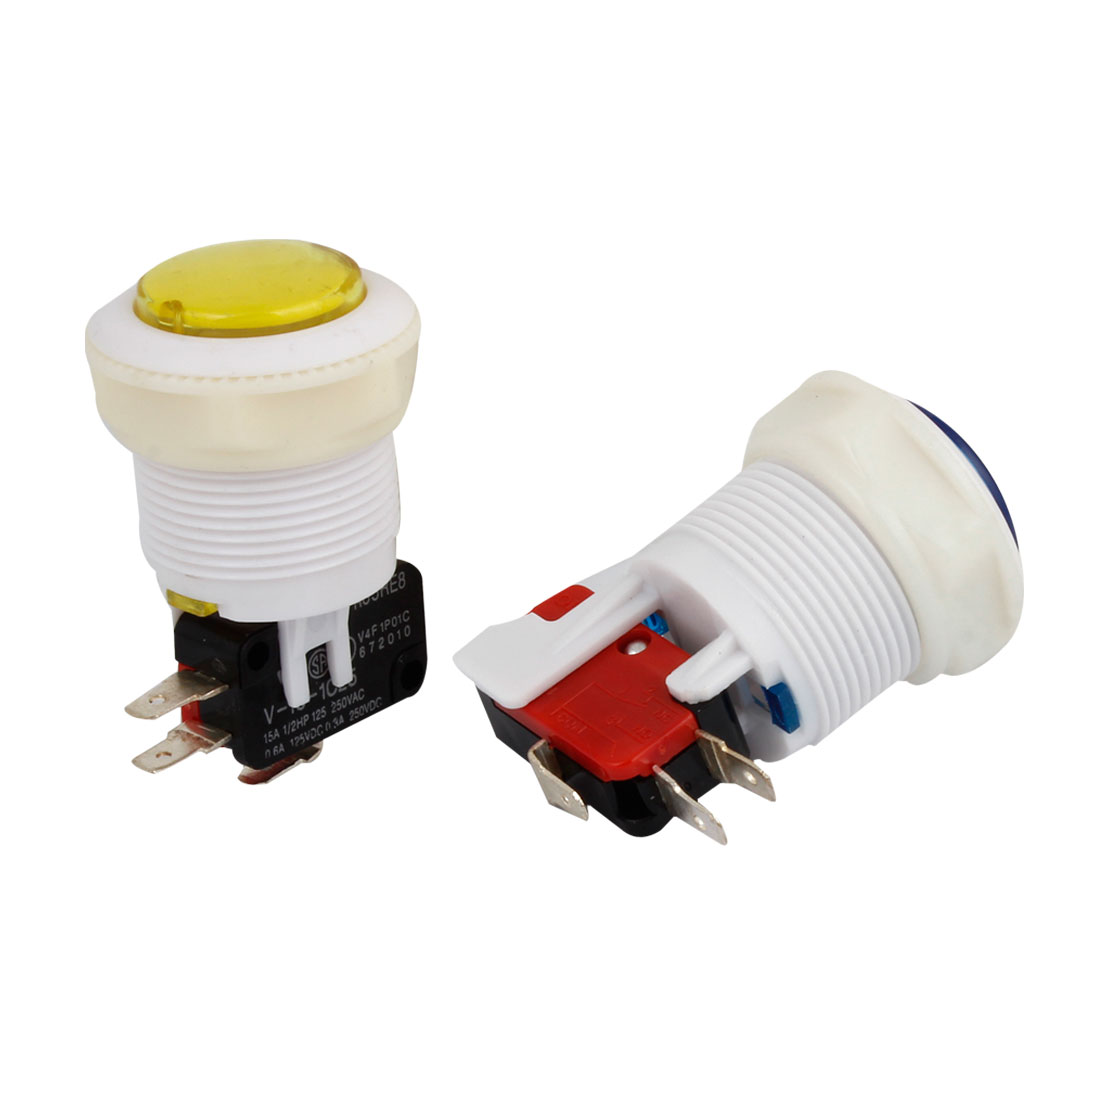 Acrade Game Blue Yellow Push Button Momentary 3-Terminals SPDT 1NO 1NC Micro Switch 2 Pcs